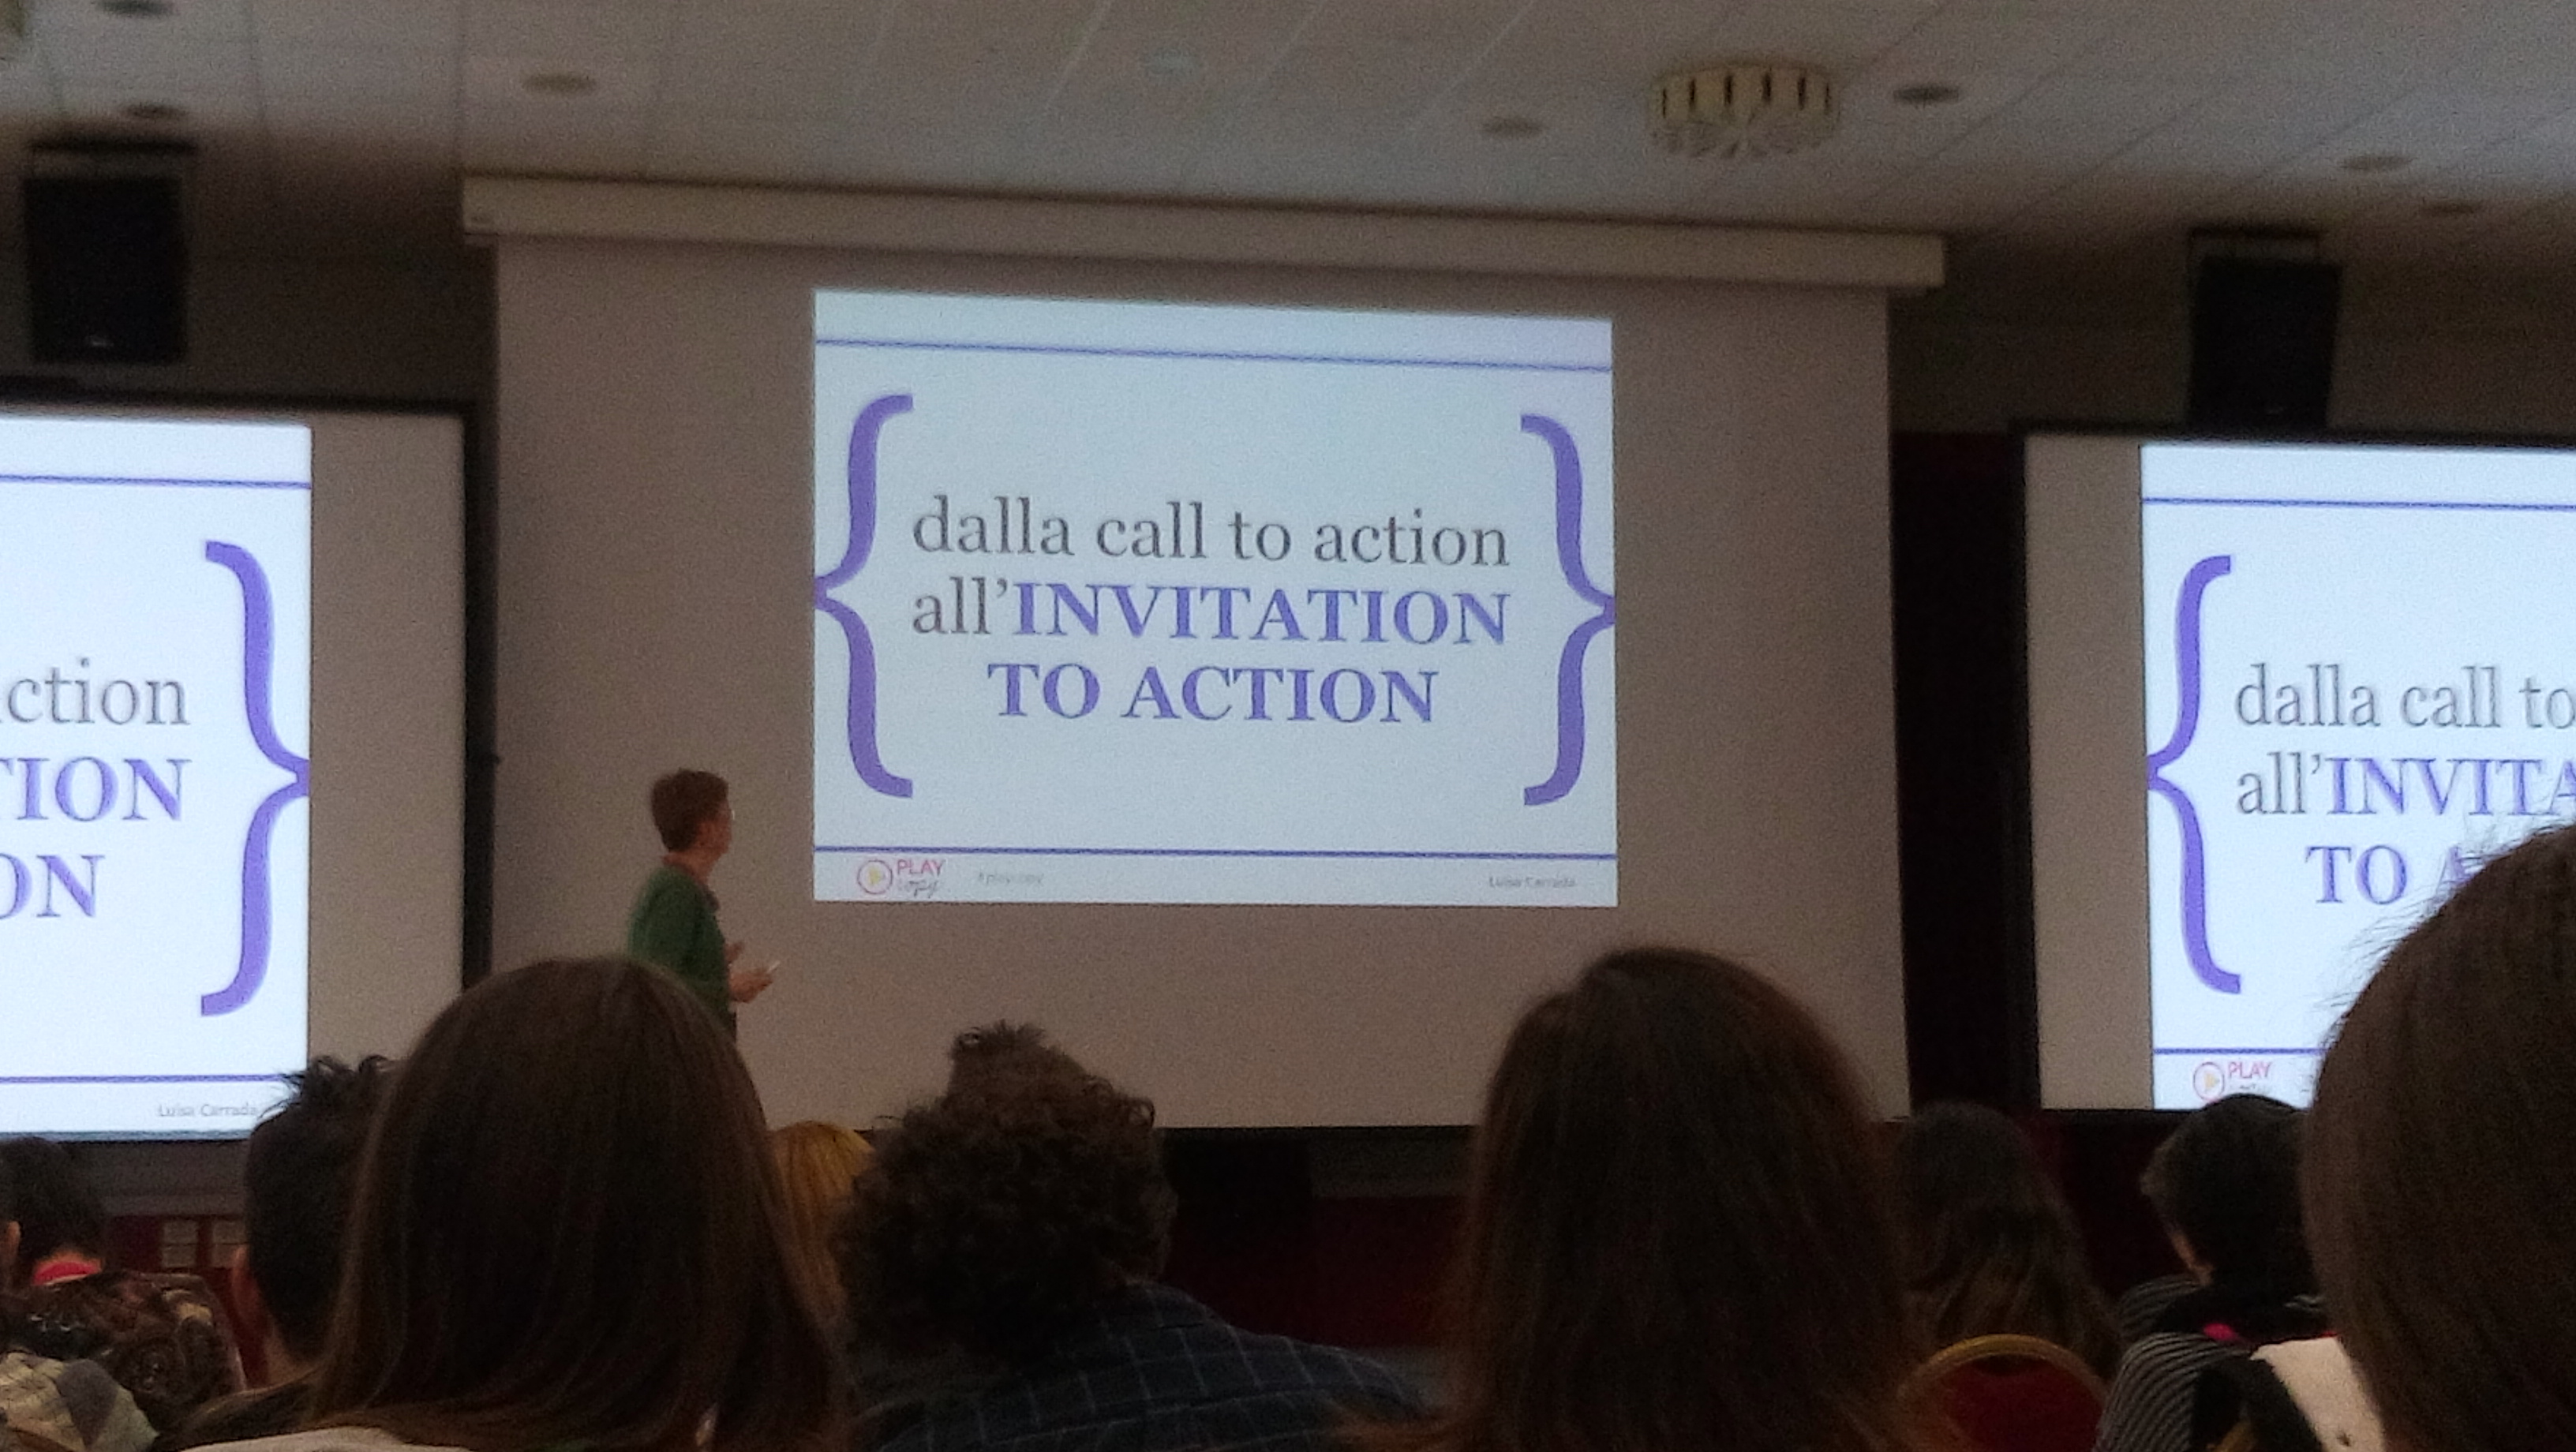 dalla call to action alla call to invitation